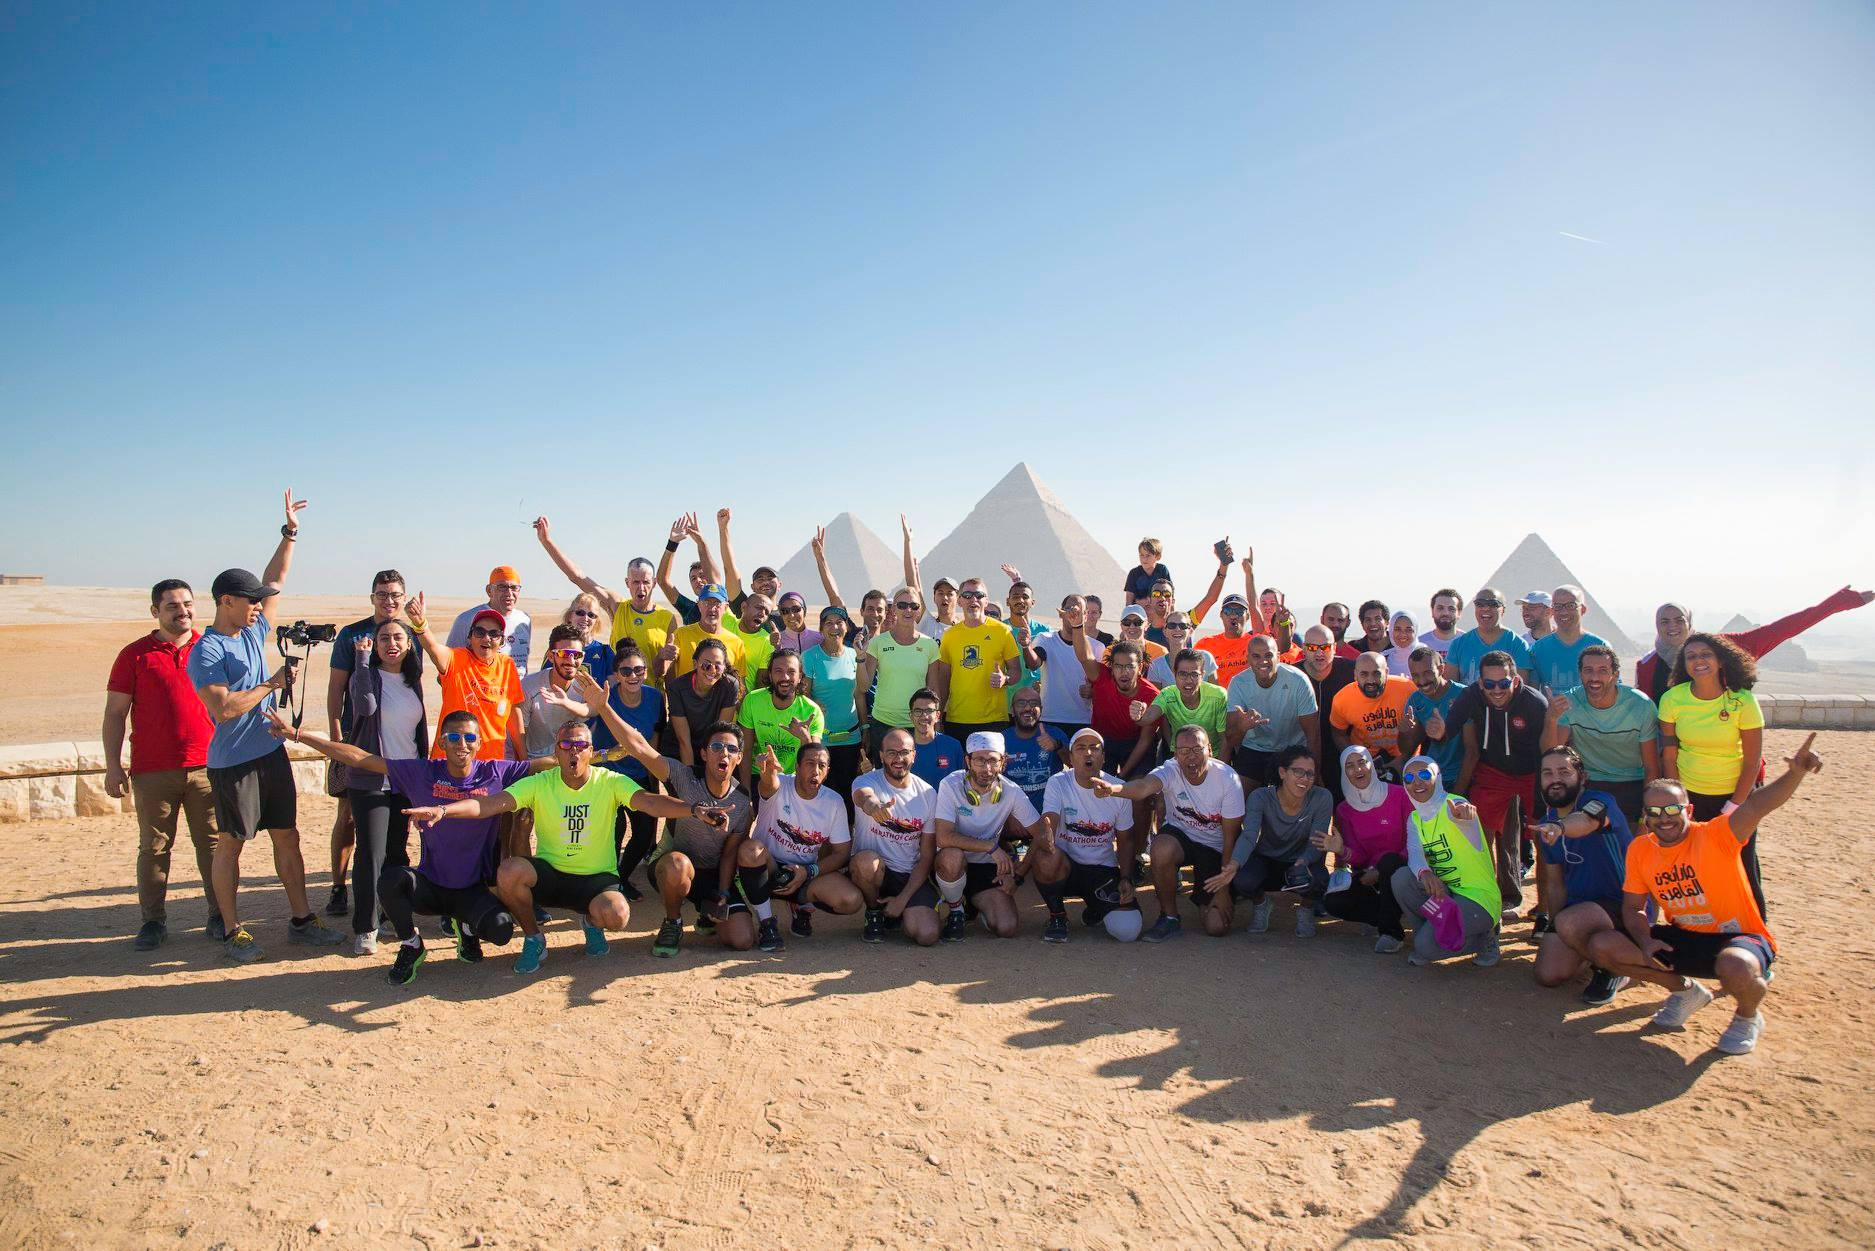 Sports Envoys and participants in the shadows of the Pyramid of Giza outside Cairo, Egypt. 2018.